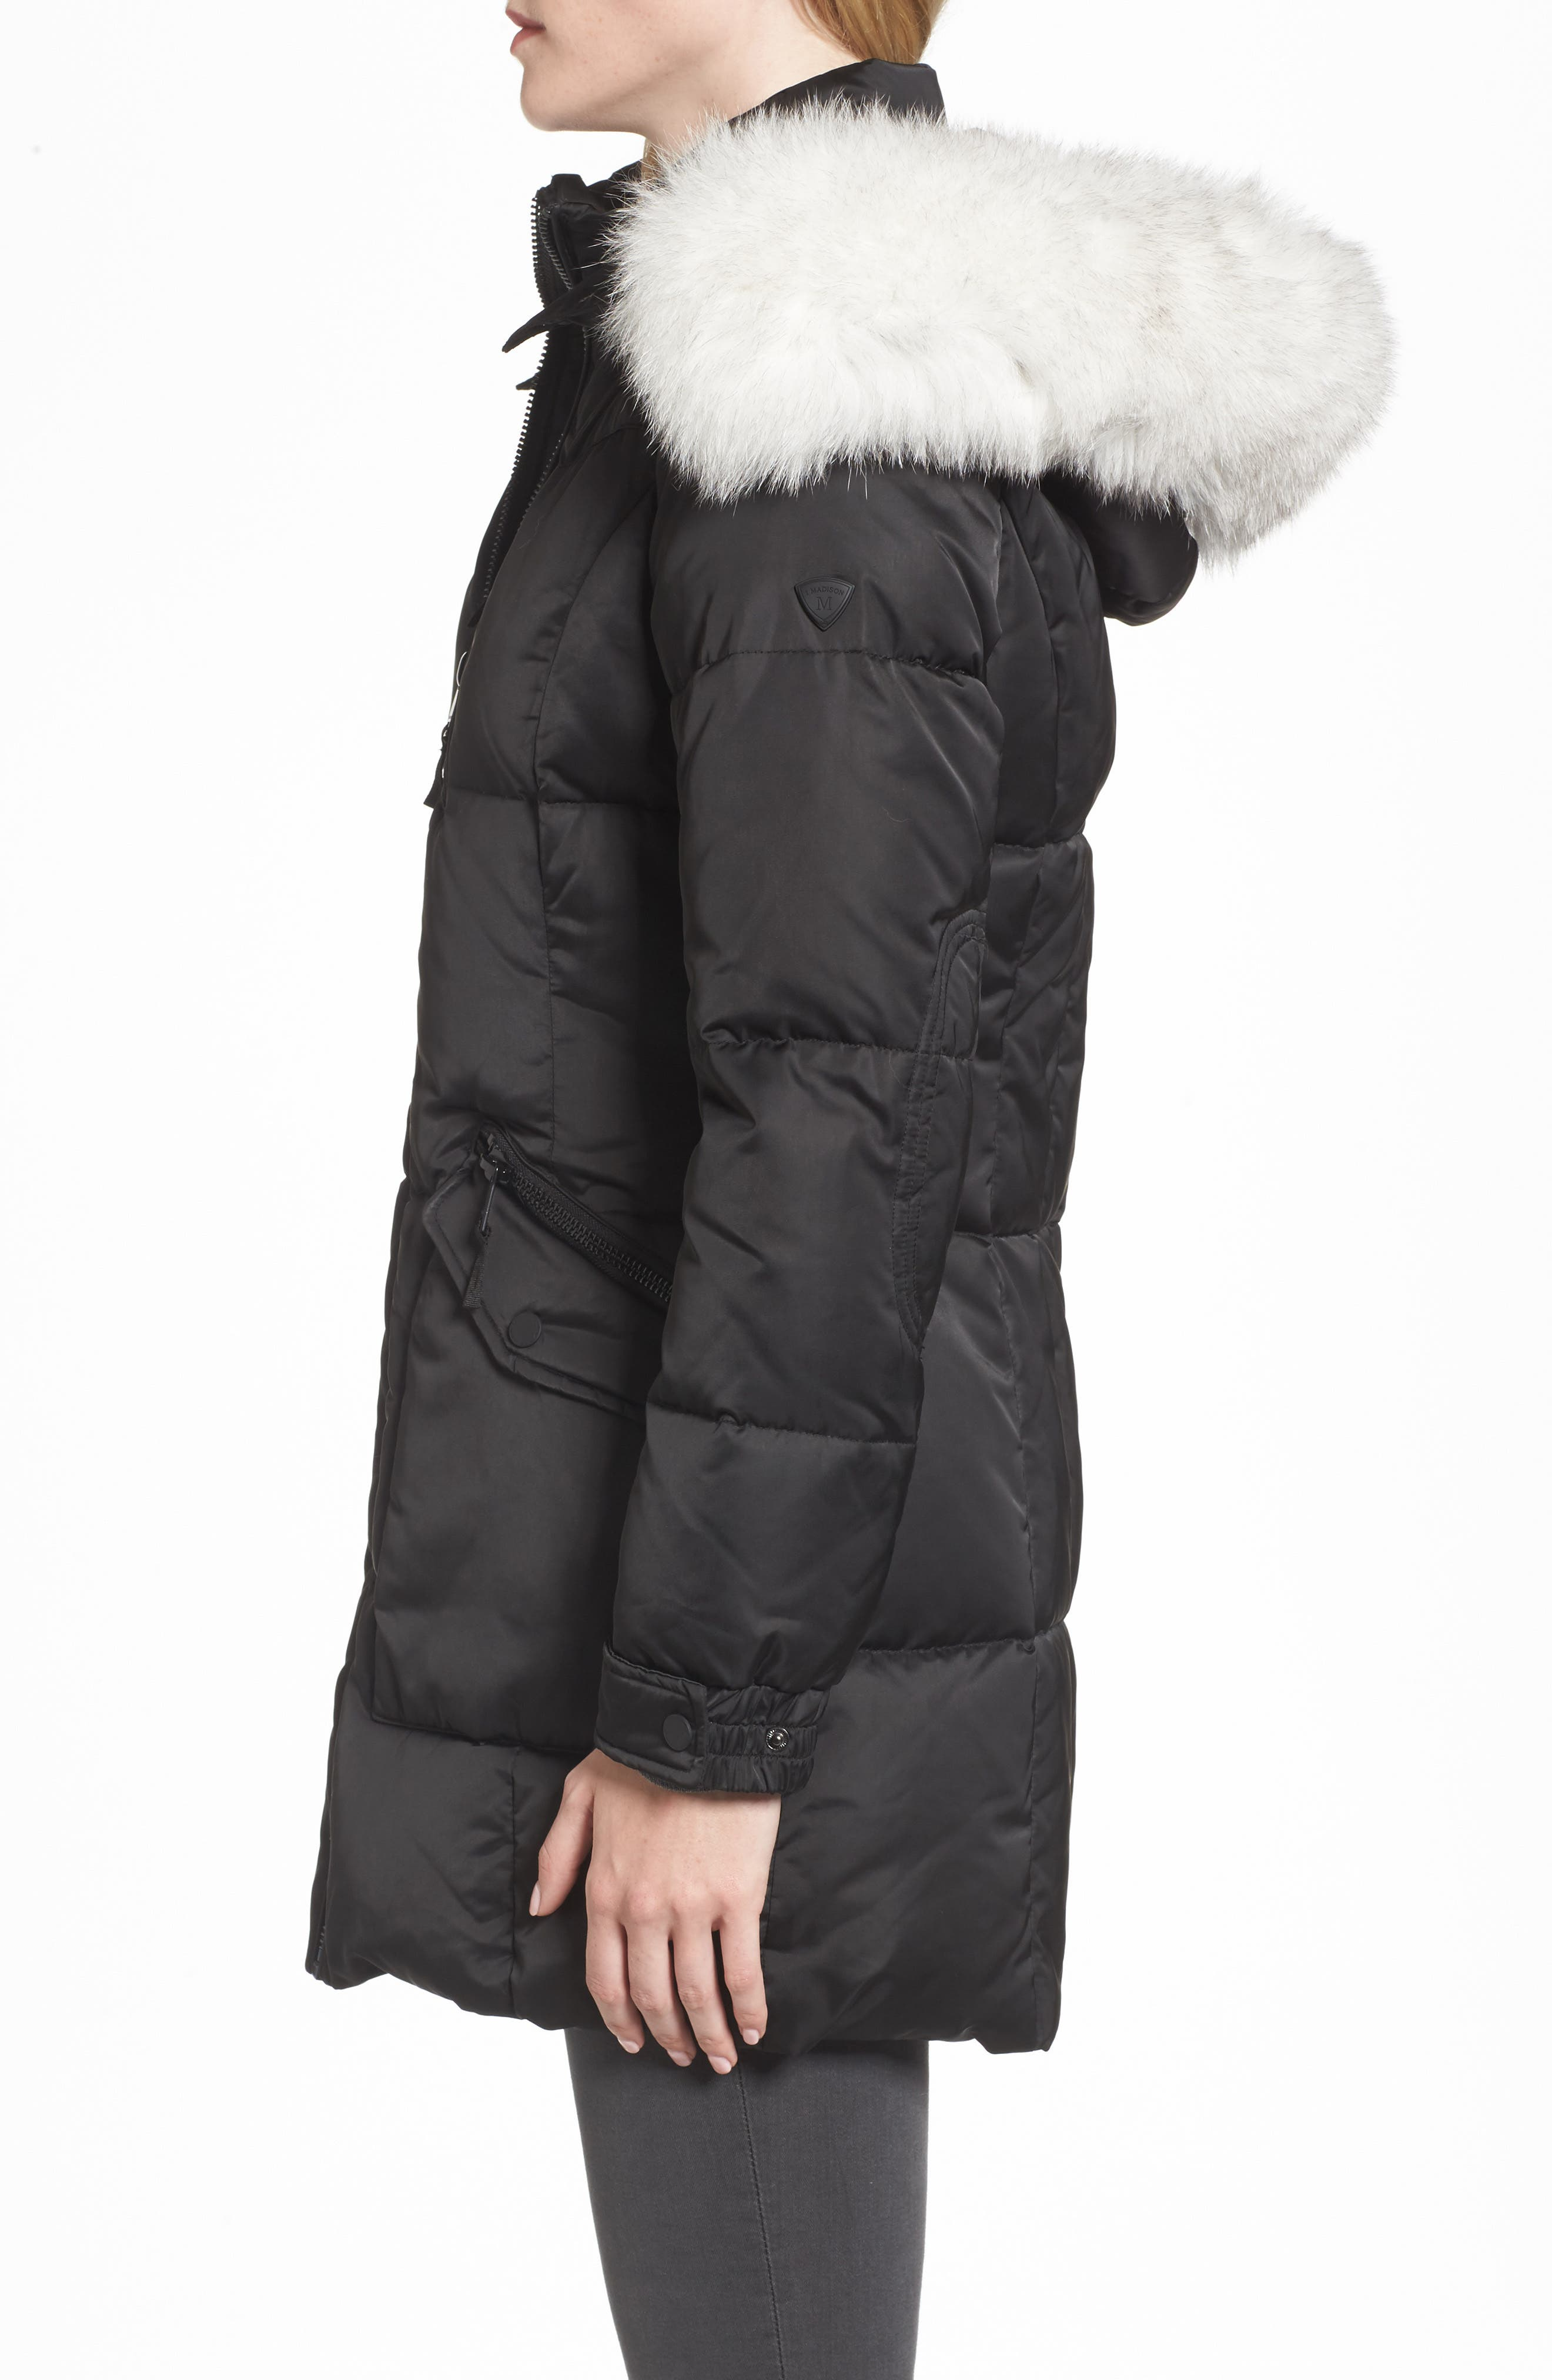 Alternate Image 3  - 1 Madison Puffer Jacket with Genuine Fox Fur Trim